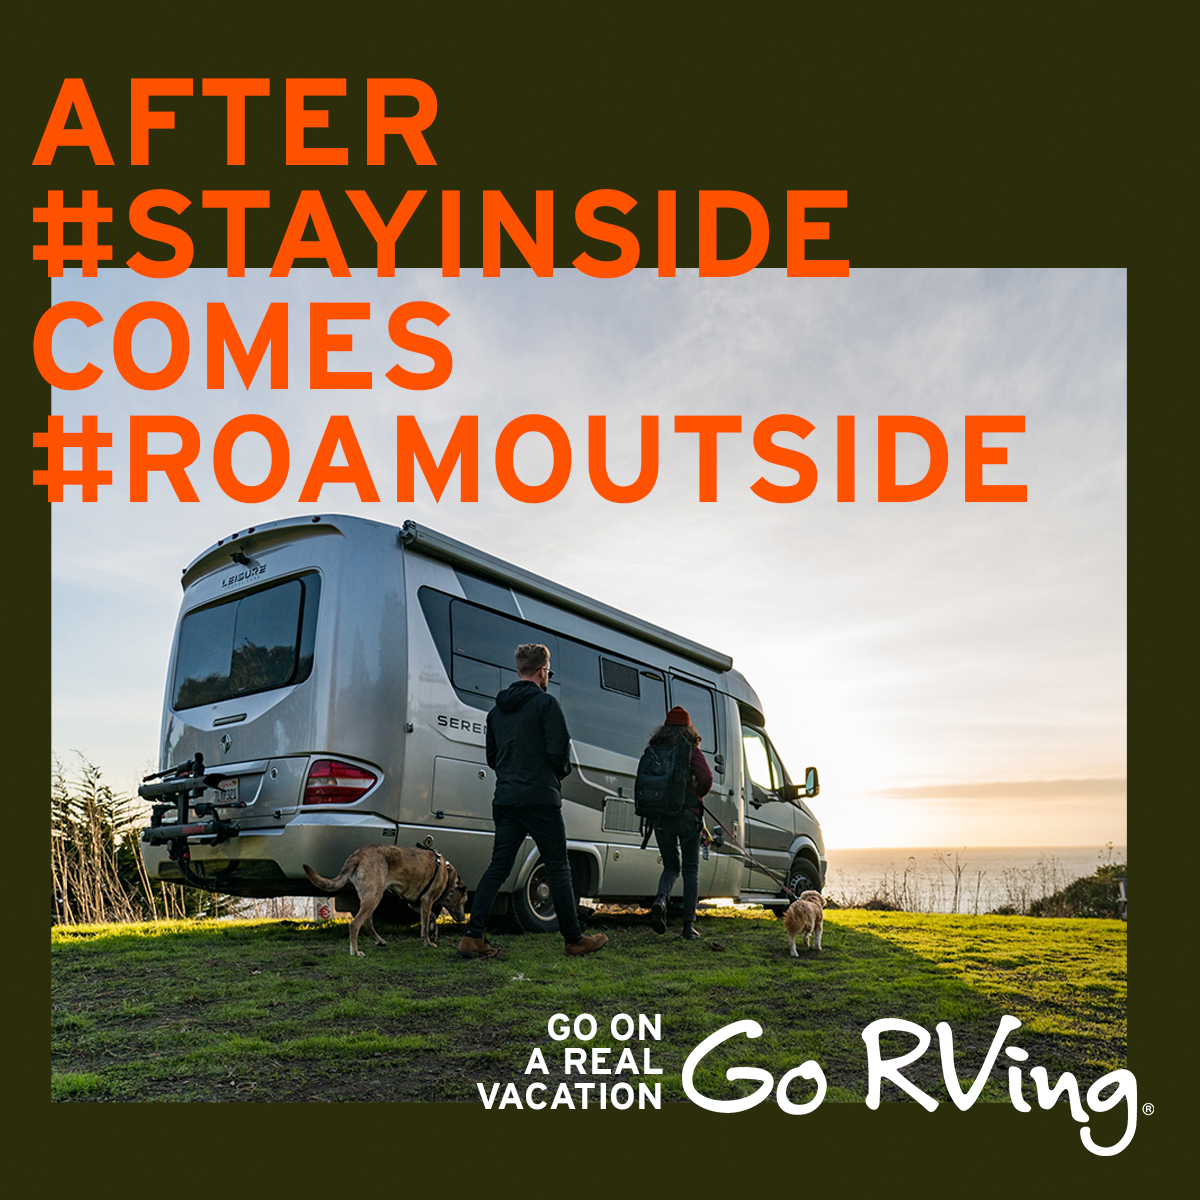 Catch up with nature. Go on a #RealVacation. Find an RV dealer on gorving.com